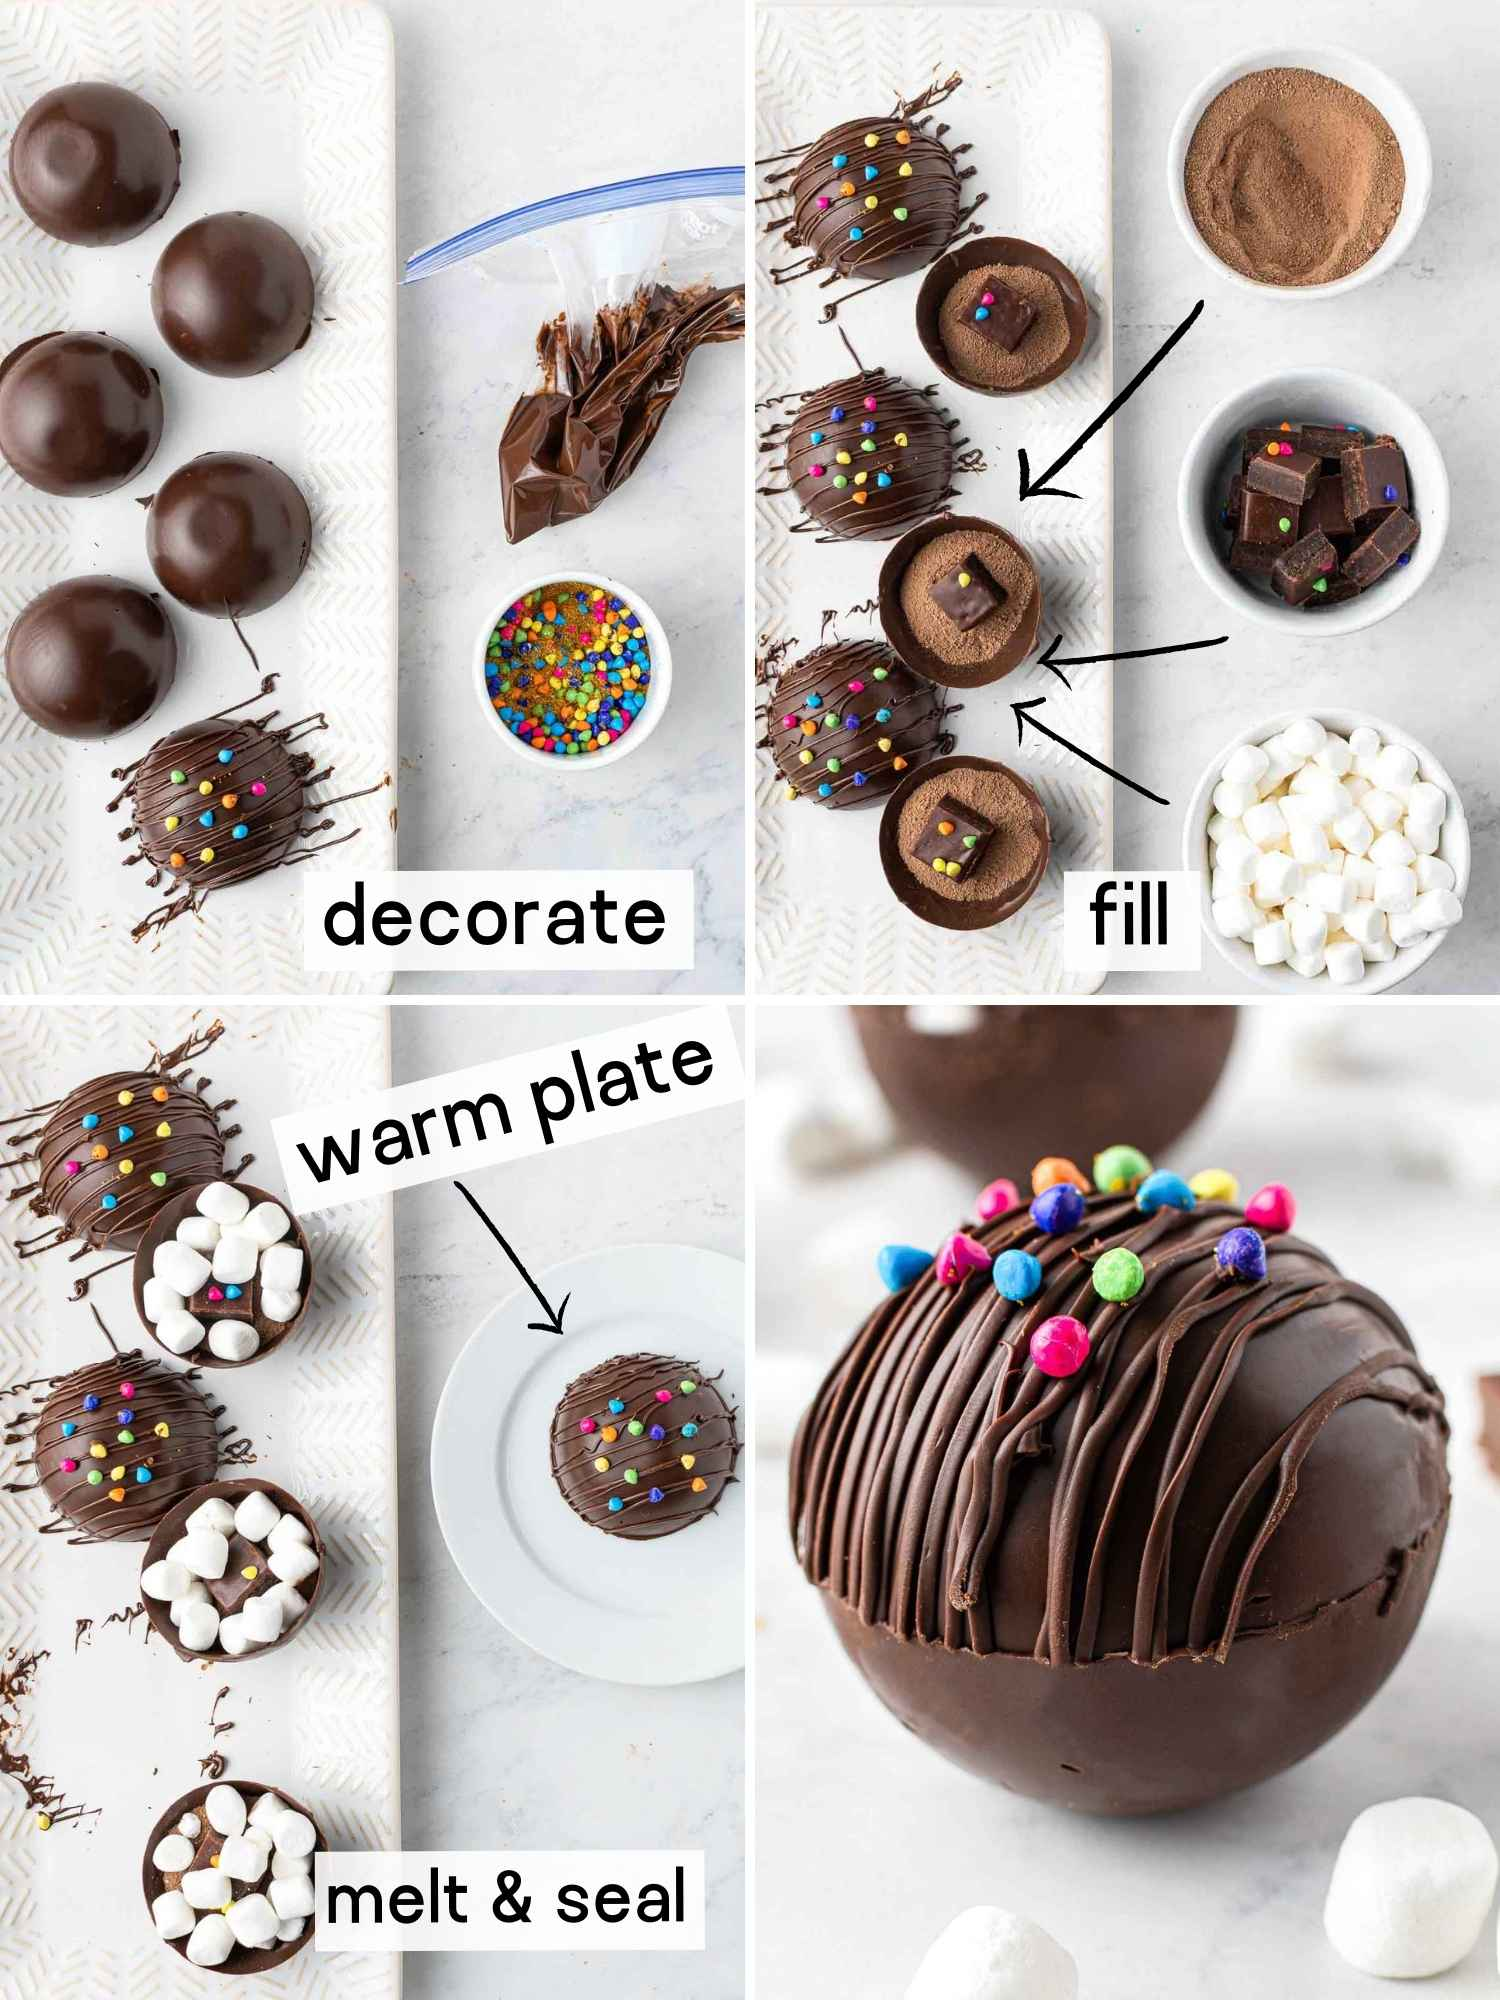 A collage with 4 images on how to make cocoa bombs